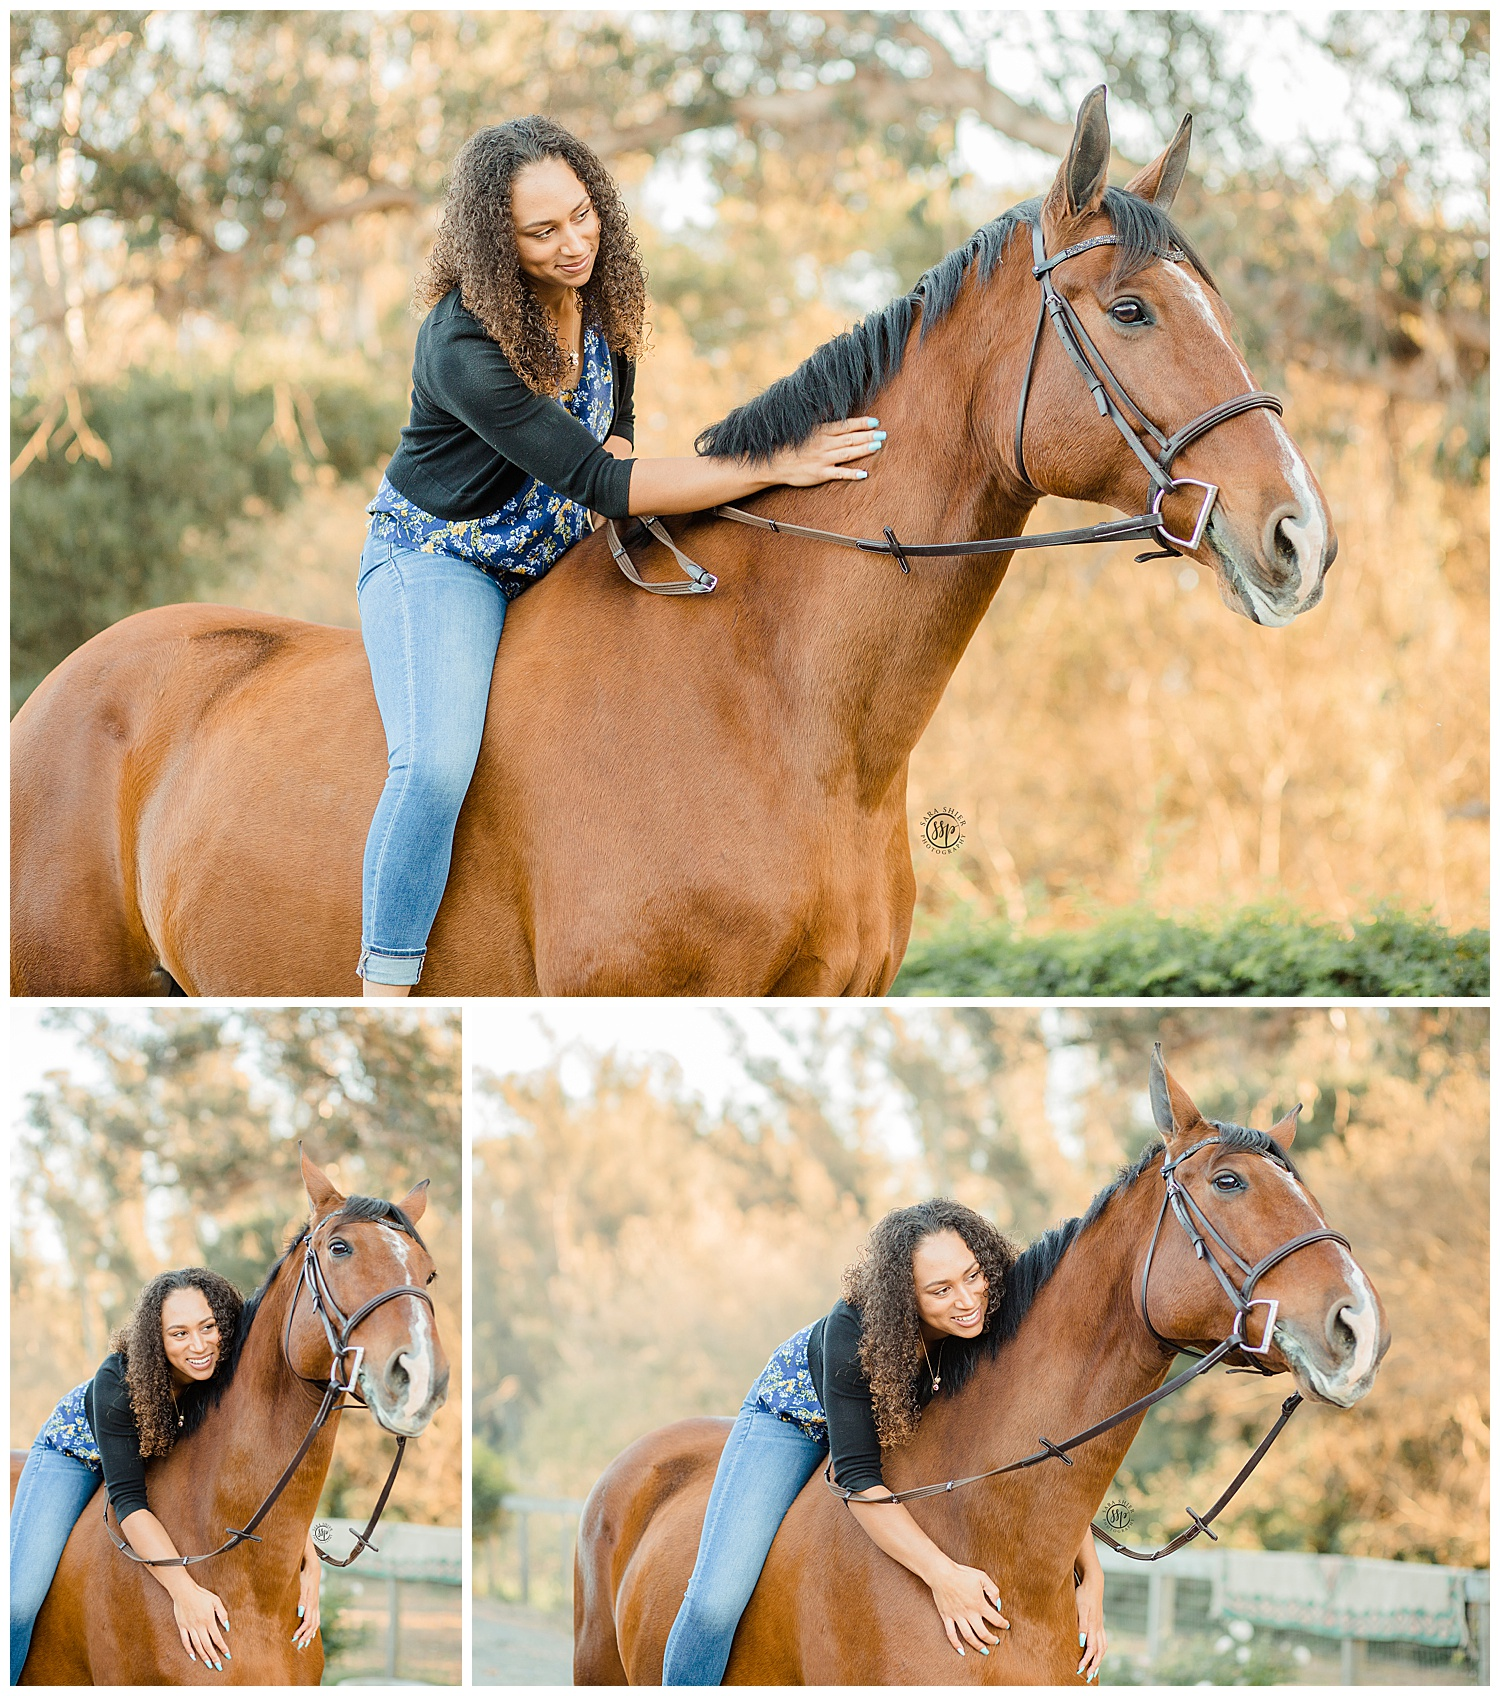 Black Background Horse Rider Equine Photographer Southern California Sara Shier Photography SoCal Equestrian Cowgirl_0241.jpg